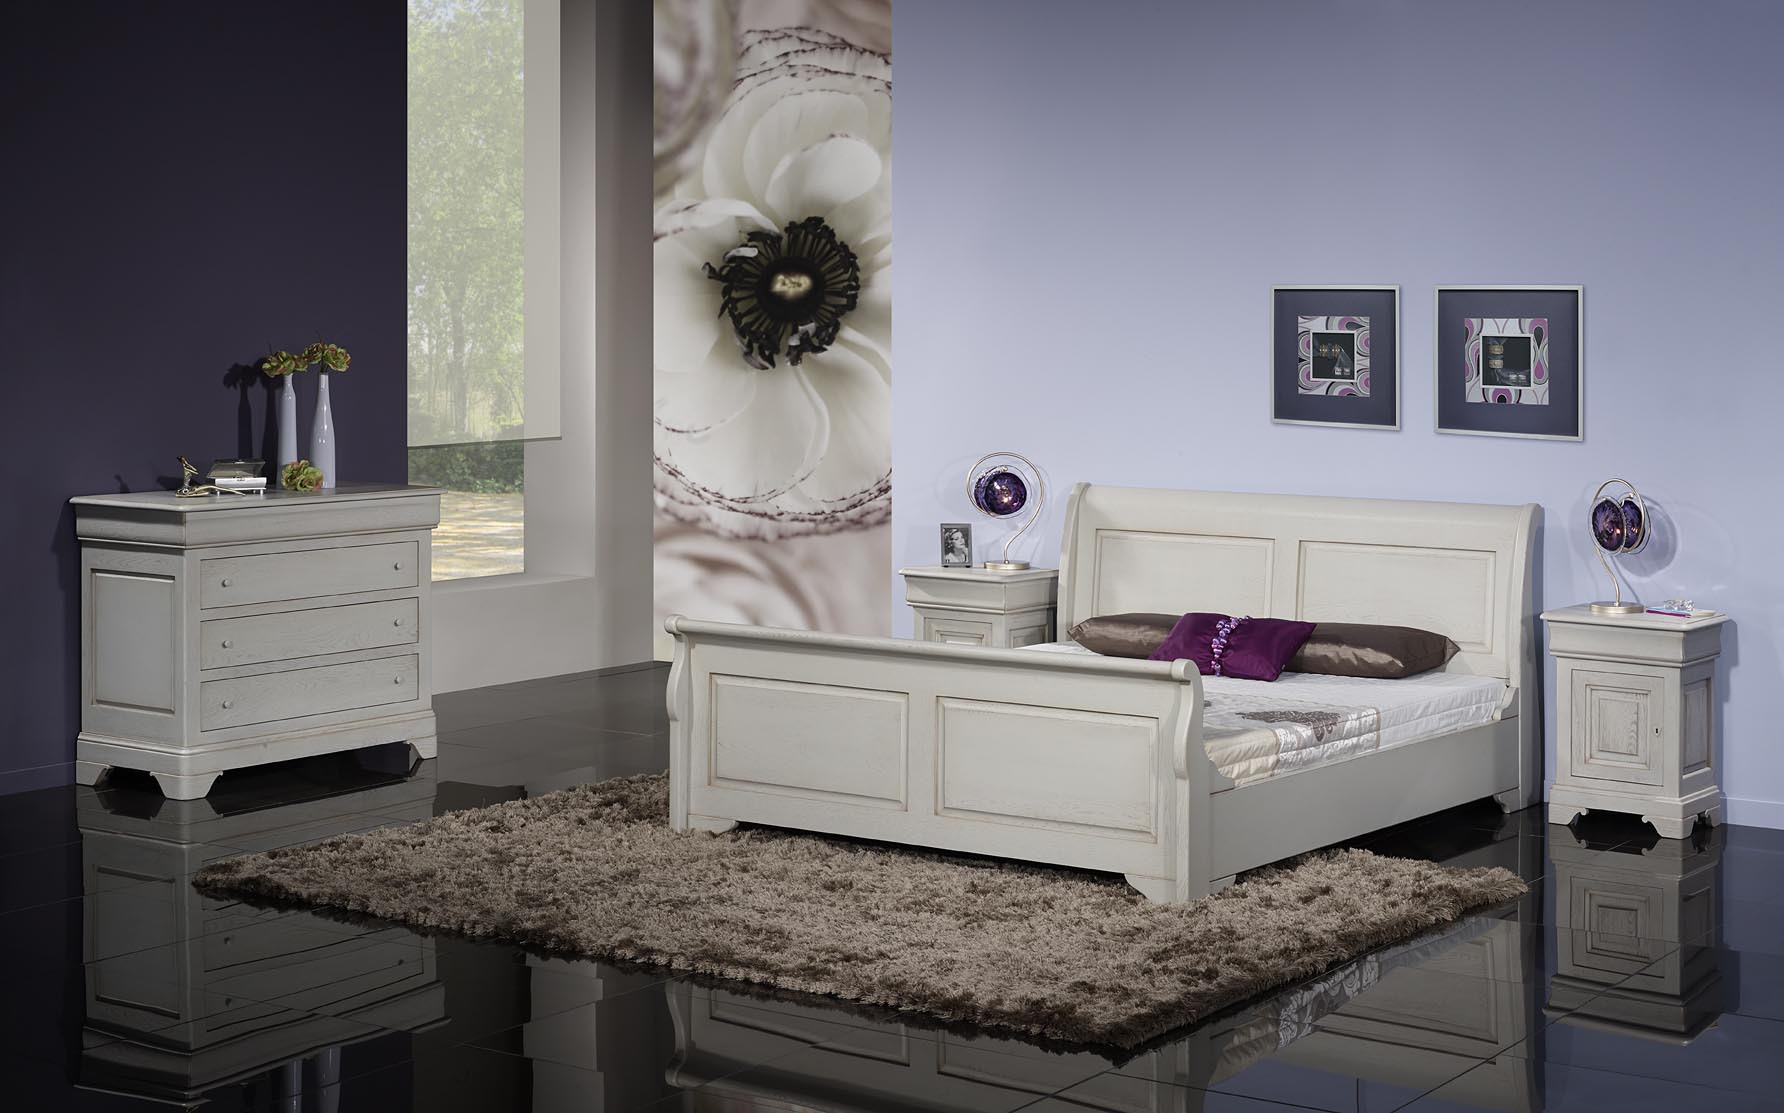 meuble en ch ne lit bateau 160x200 etienne r alis en ch ne massif de style louis philippe. Black Bedroom Furniture Sets. Home Design Ideas